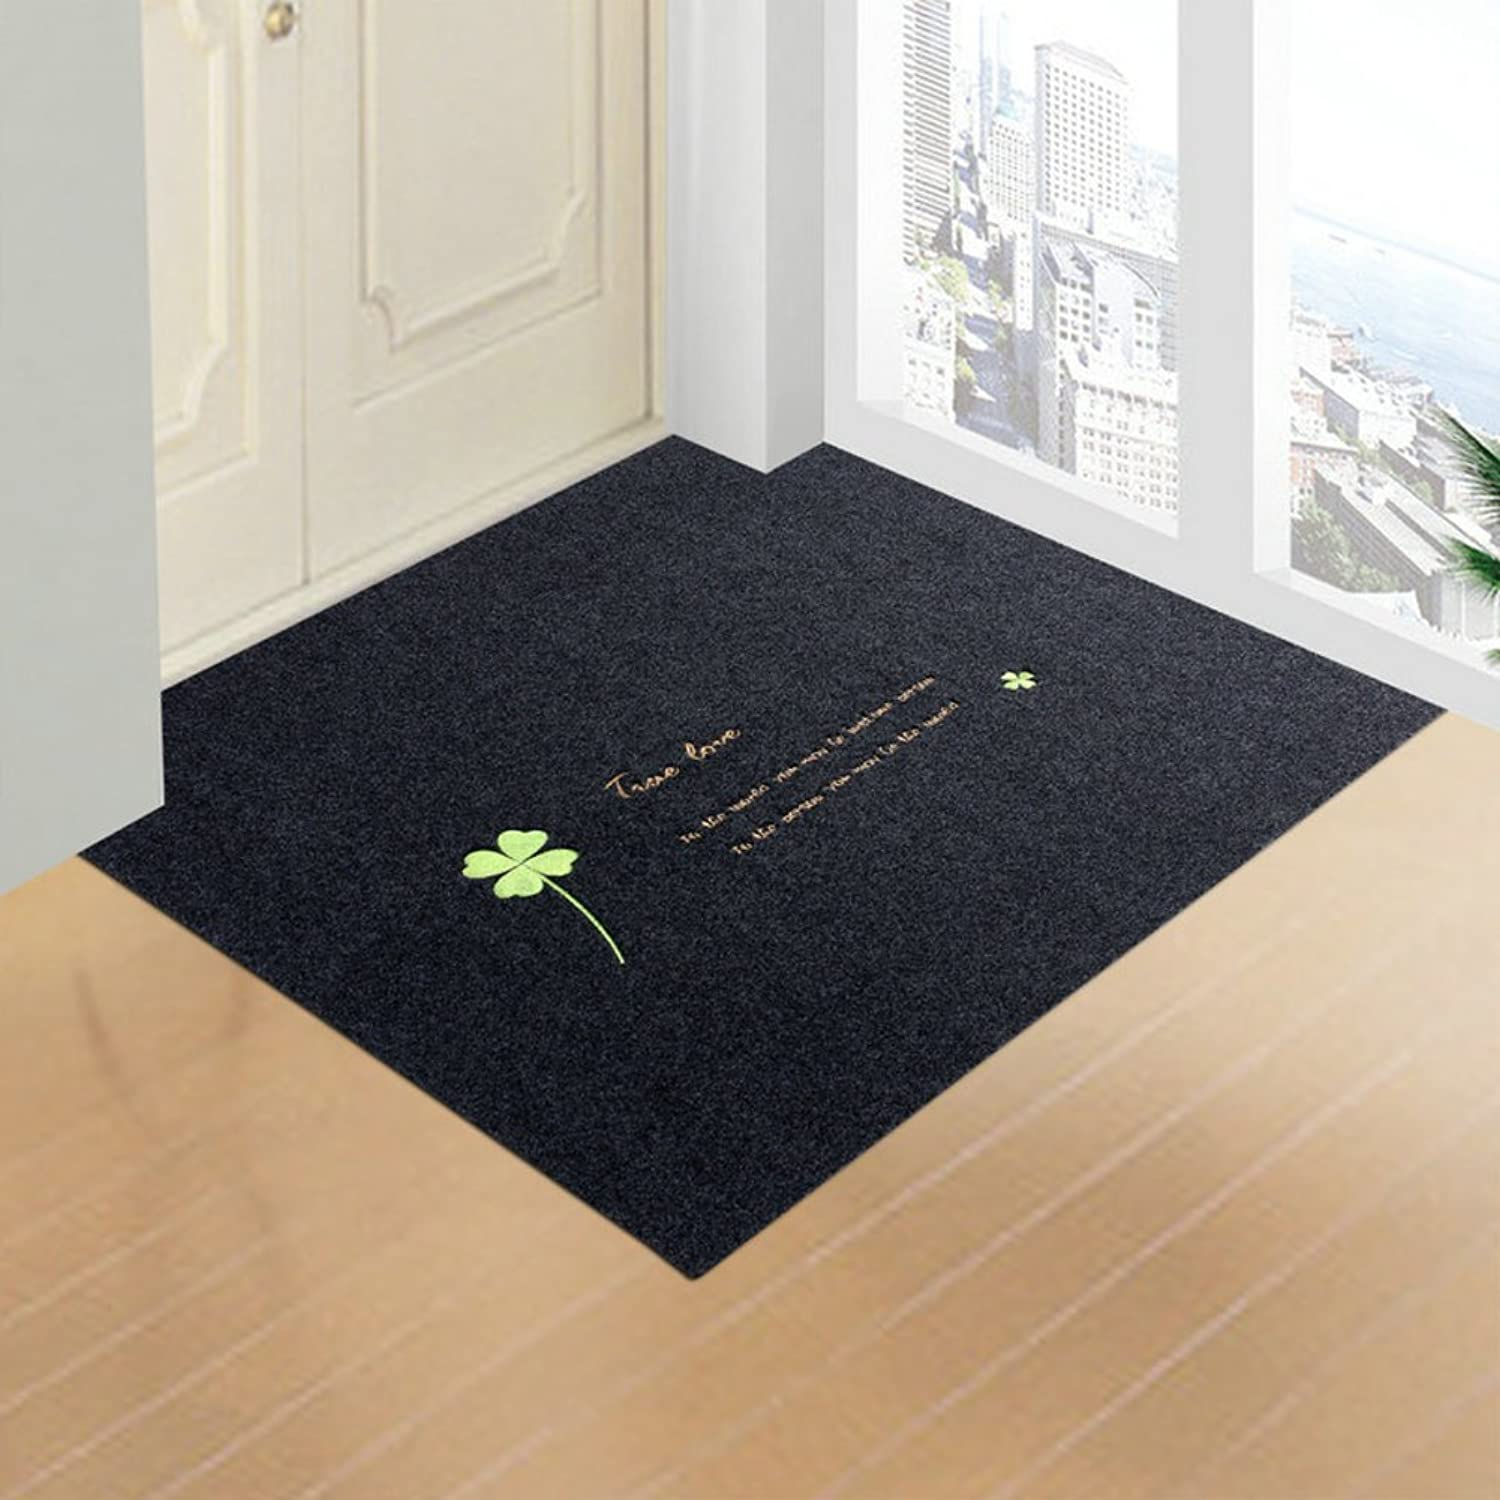 Doormats Water-Absorption Door mat Indoor mat for Bathroom Kitchen -G 100x160cm(39x63inch)